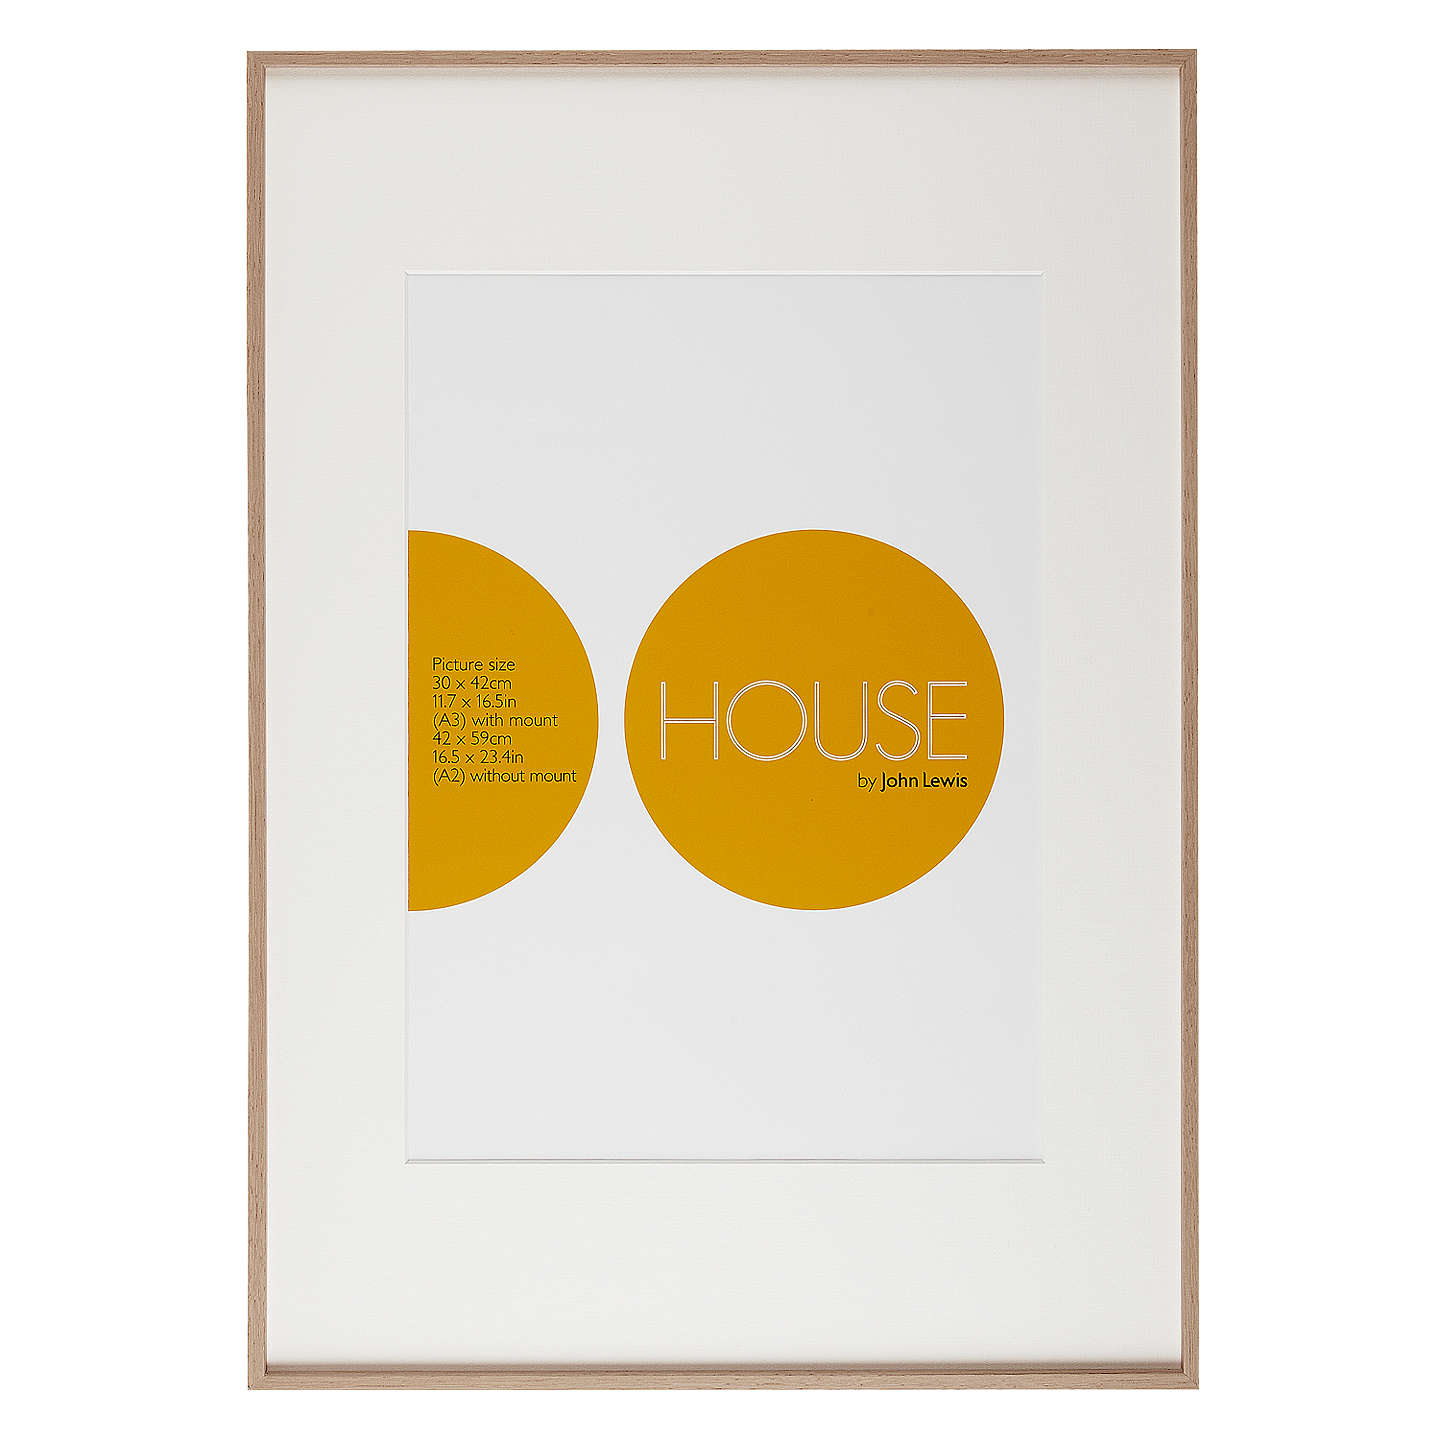 House by john lewis aluminium photo frame a2 with a3 mount at john buyhouse by john lewis aluminium photo frame a2 with a3 mount natural wood effect gumiabroncs Choice Image